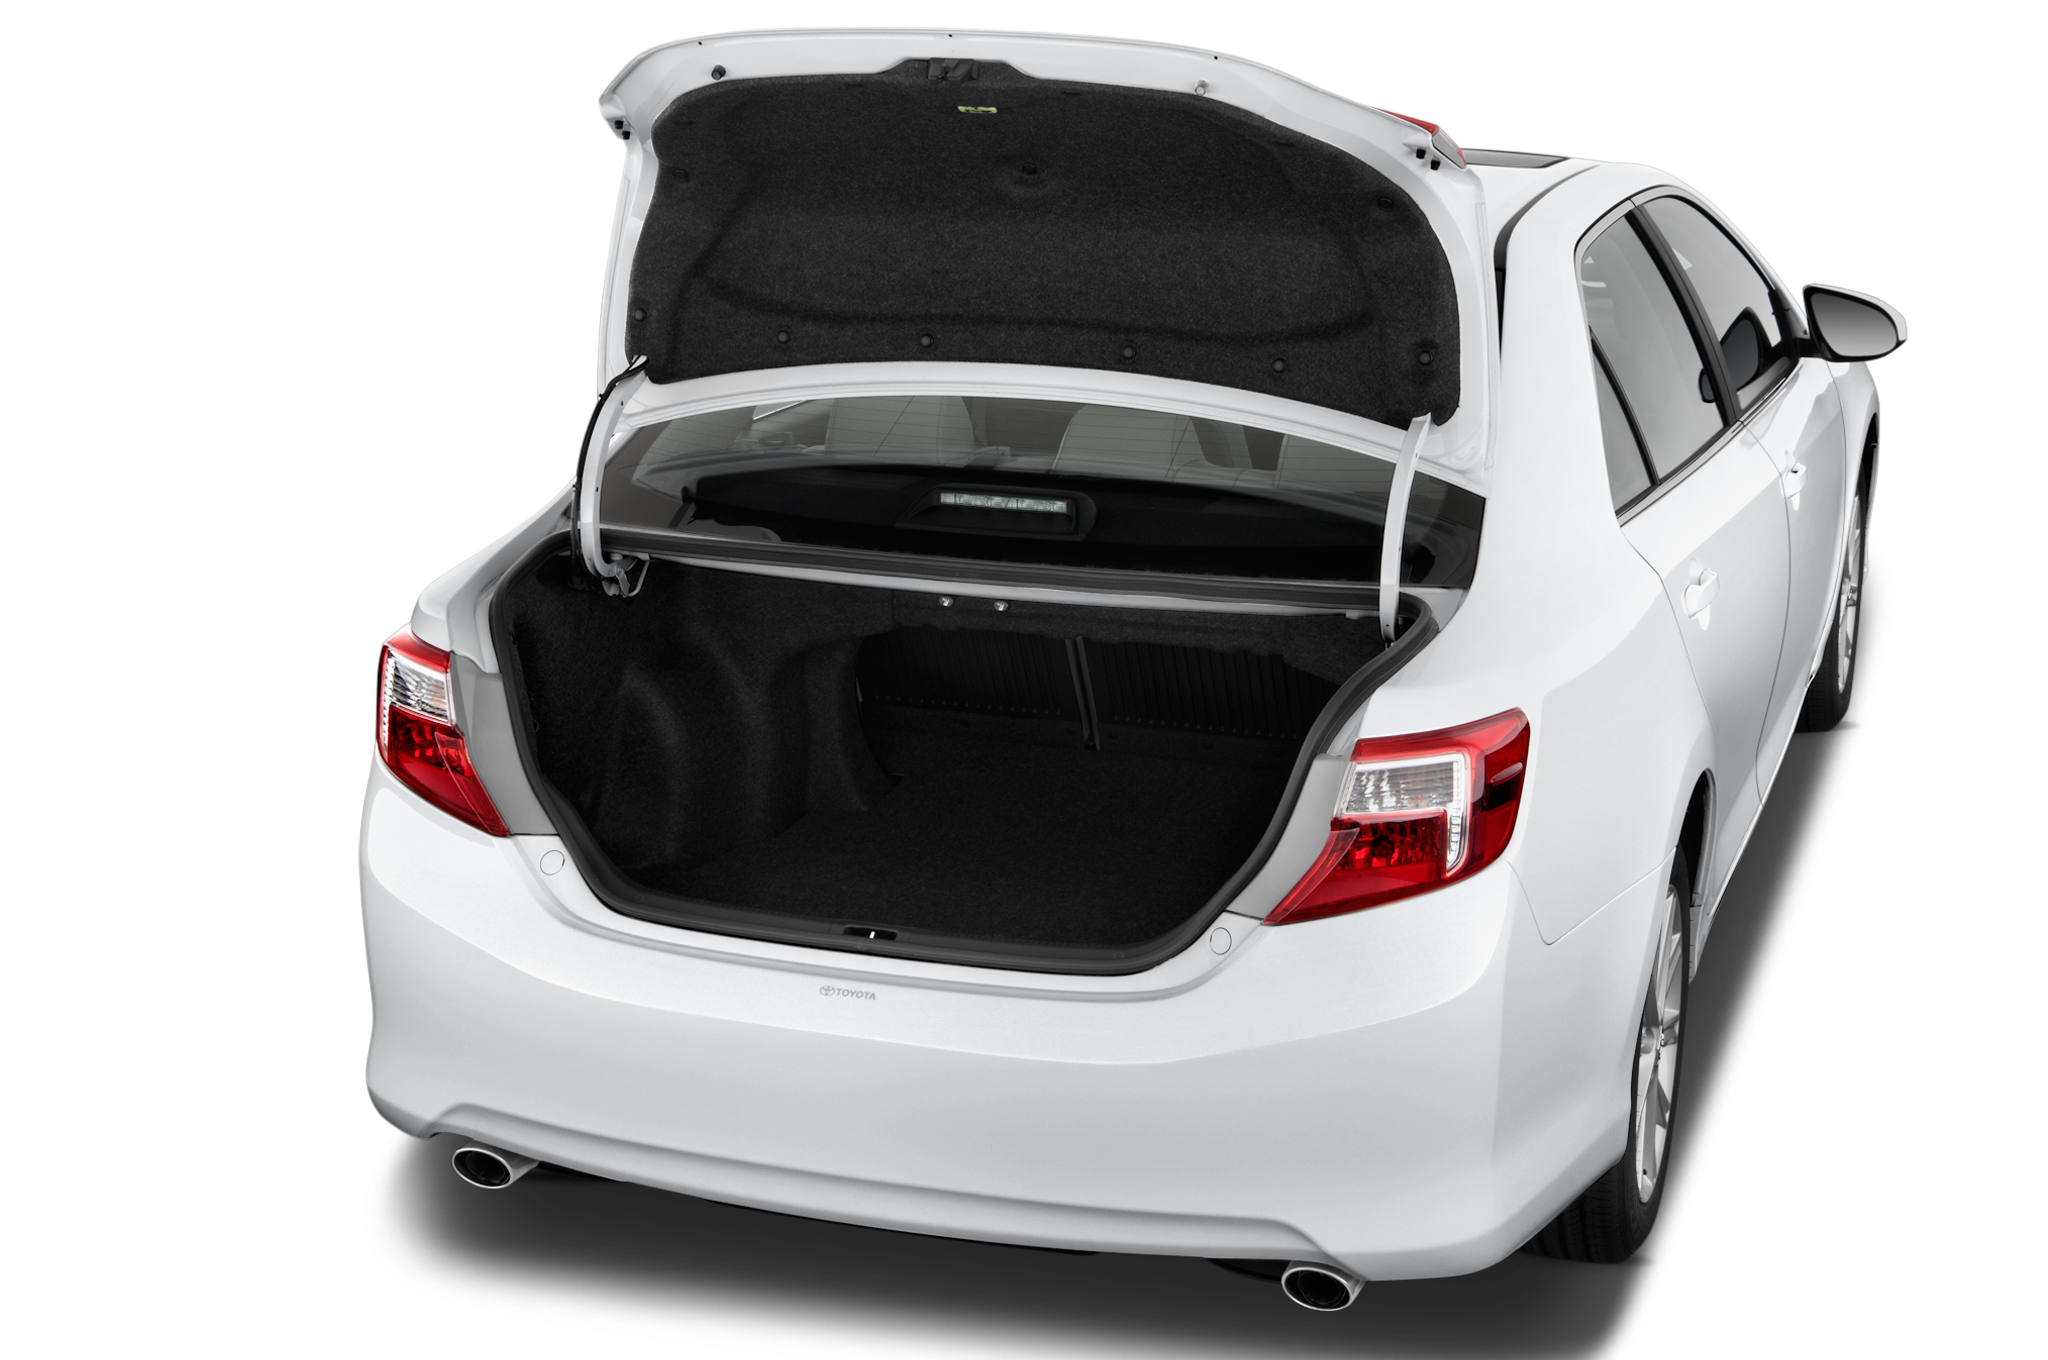 how to open 2014 toyota camry trunk without key